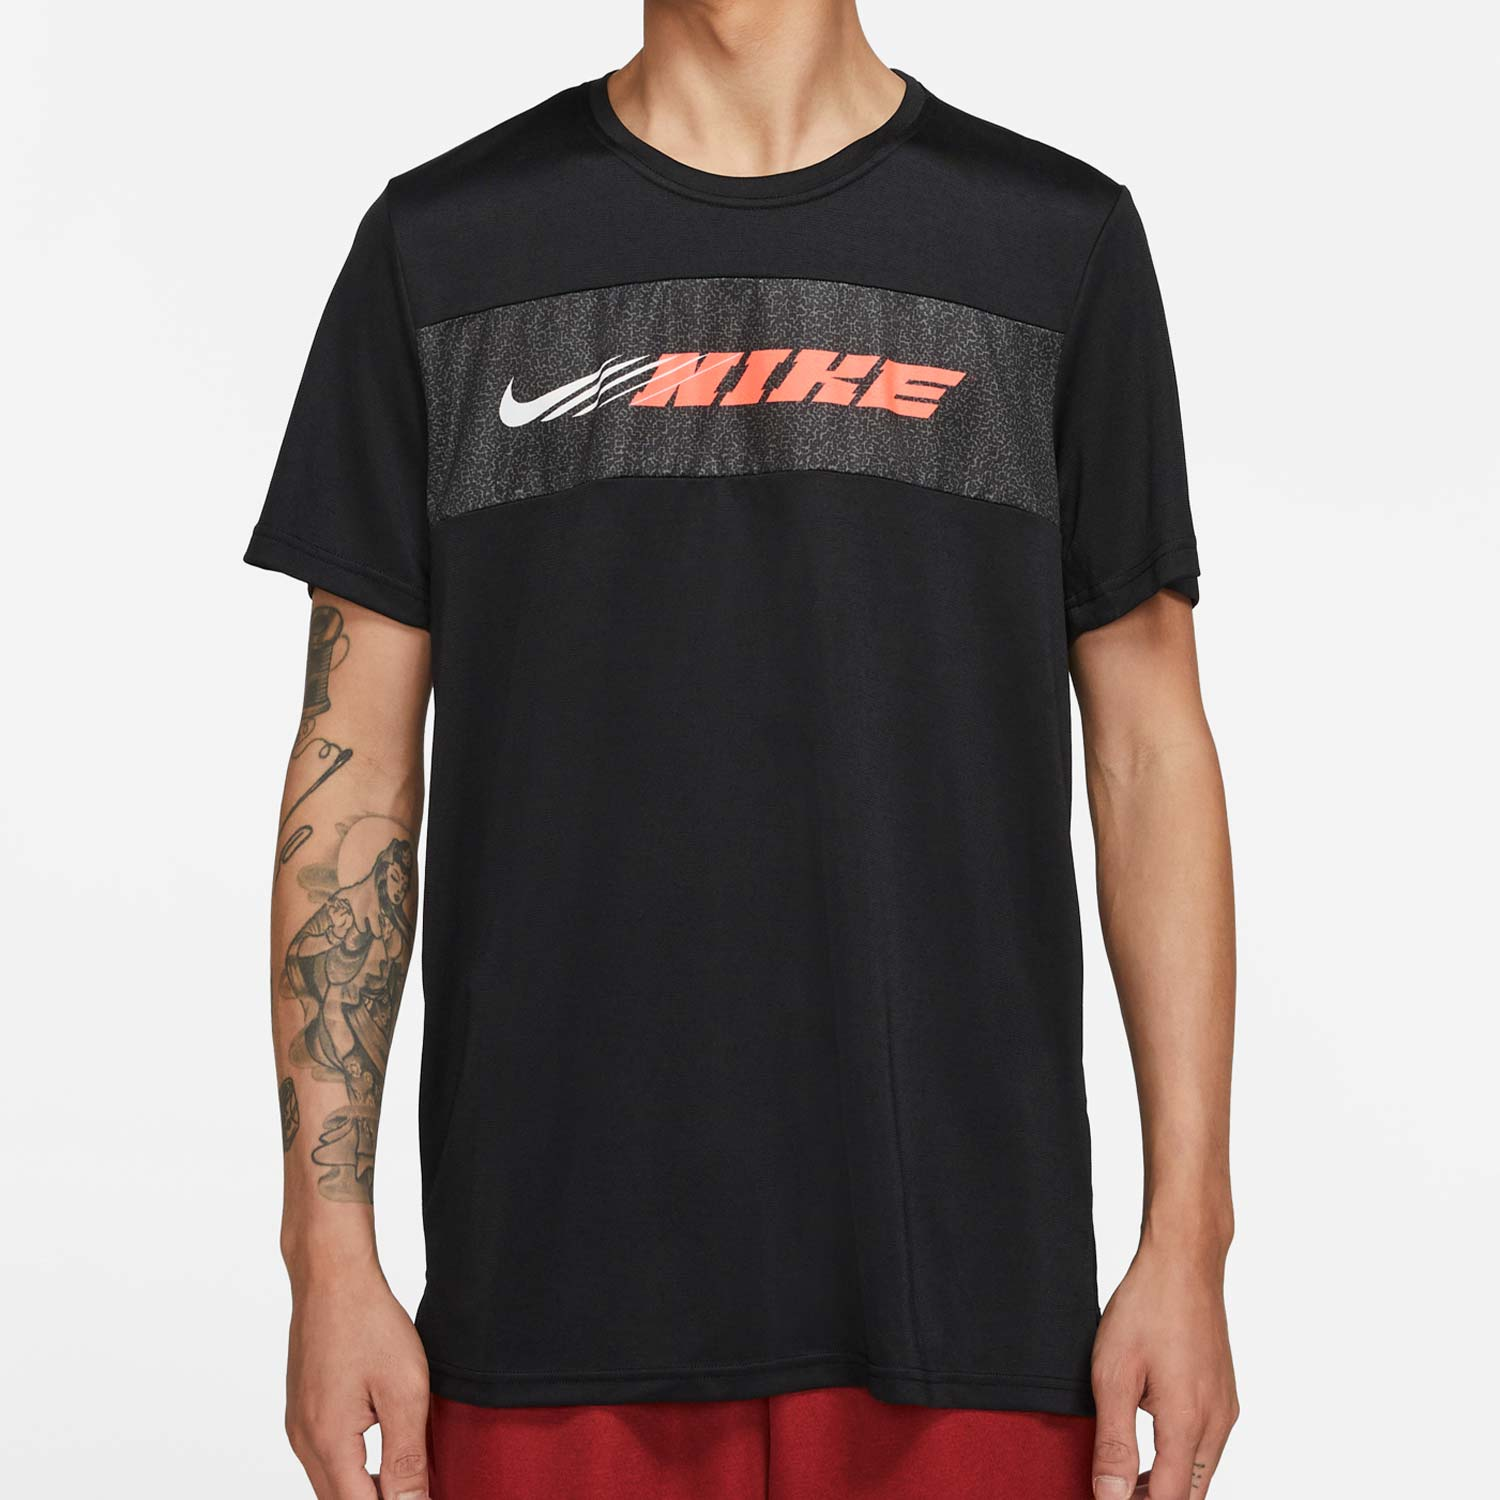 NIKE SUPERSETHerren-Shirt